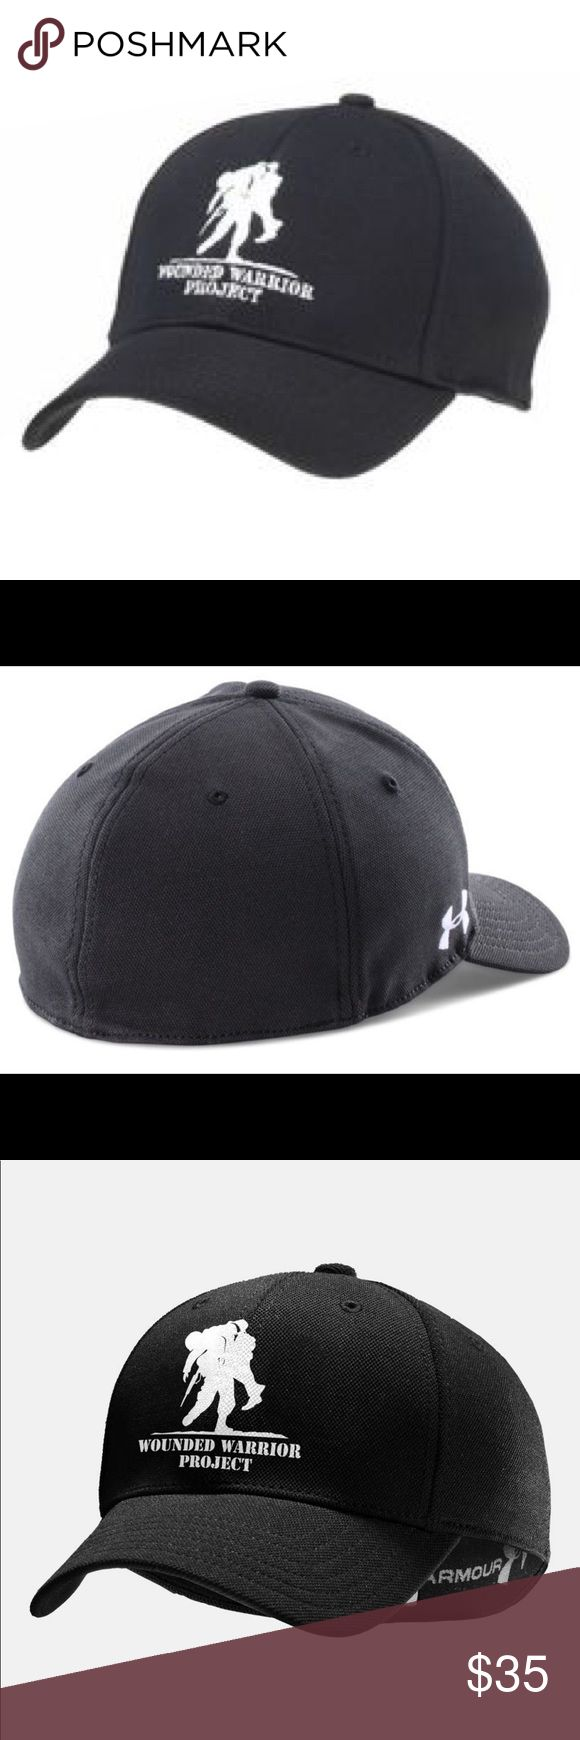 Under Armour wounded warrior project UA cap hat This hat is an Official Wounded Warrior Project Licensed product Wounded Warrior Project™ will receive 10% of the net sale of this product through December 31st, 2014 from Under Armour to benefit injured service members and their families Ideal for outdoor sports, this men's ball cap has a structured stretch fit that delivers enhanced comfort and stability Built-in, internal HeatGear® sweatband keeps you cool and dry Large WWP logo on front of…